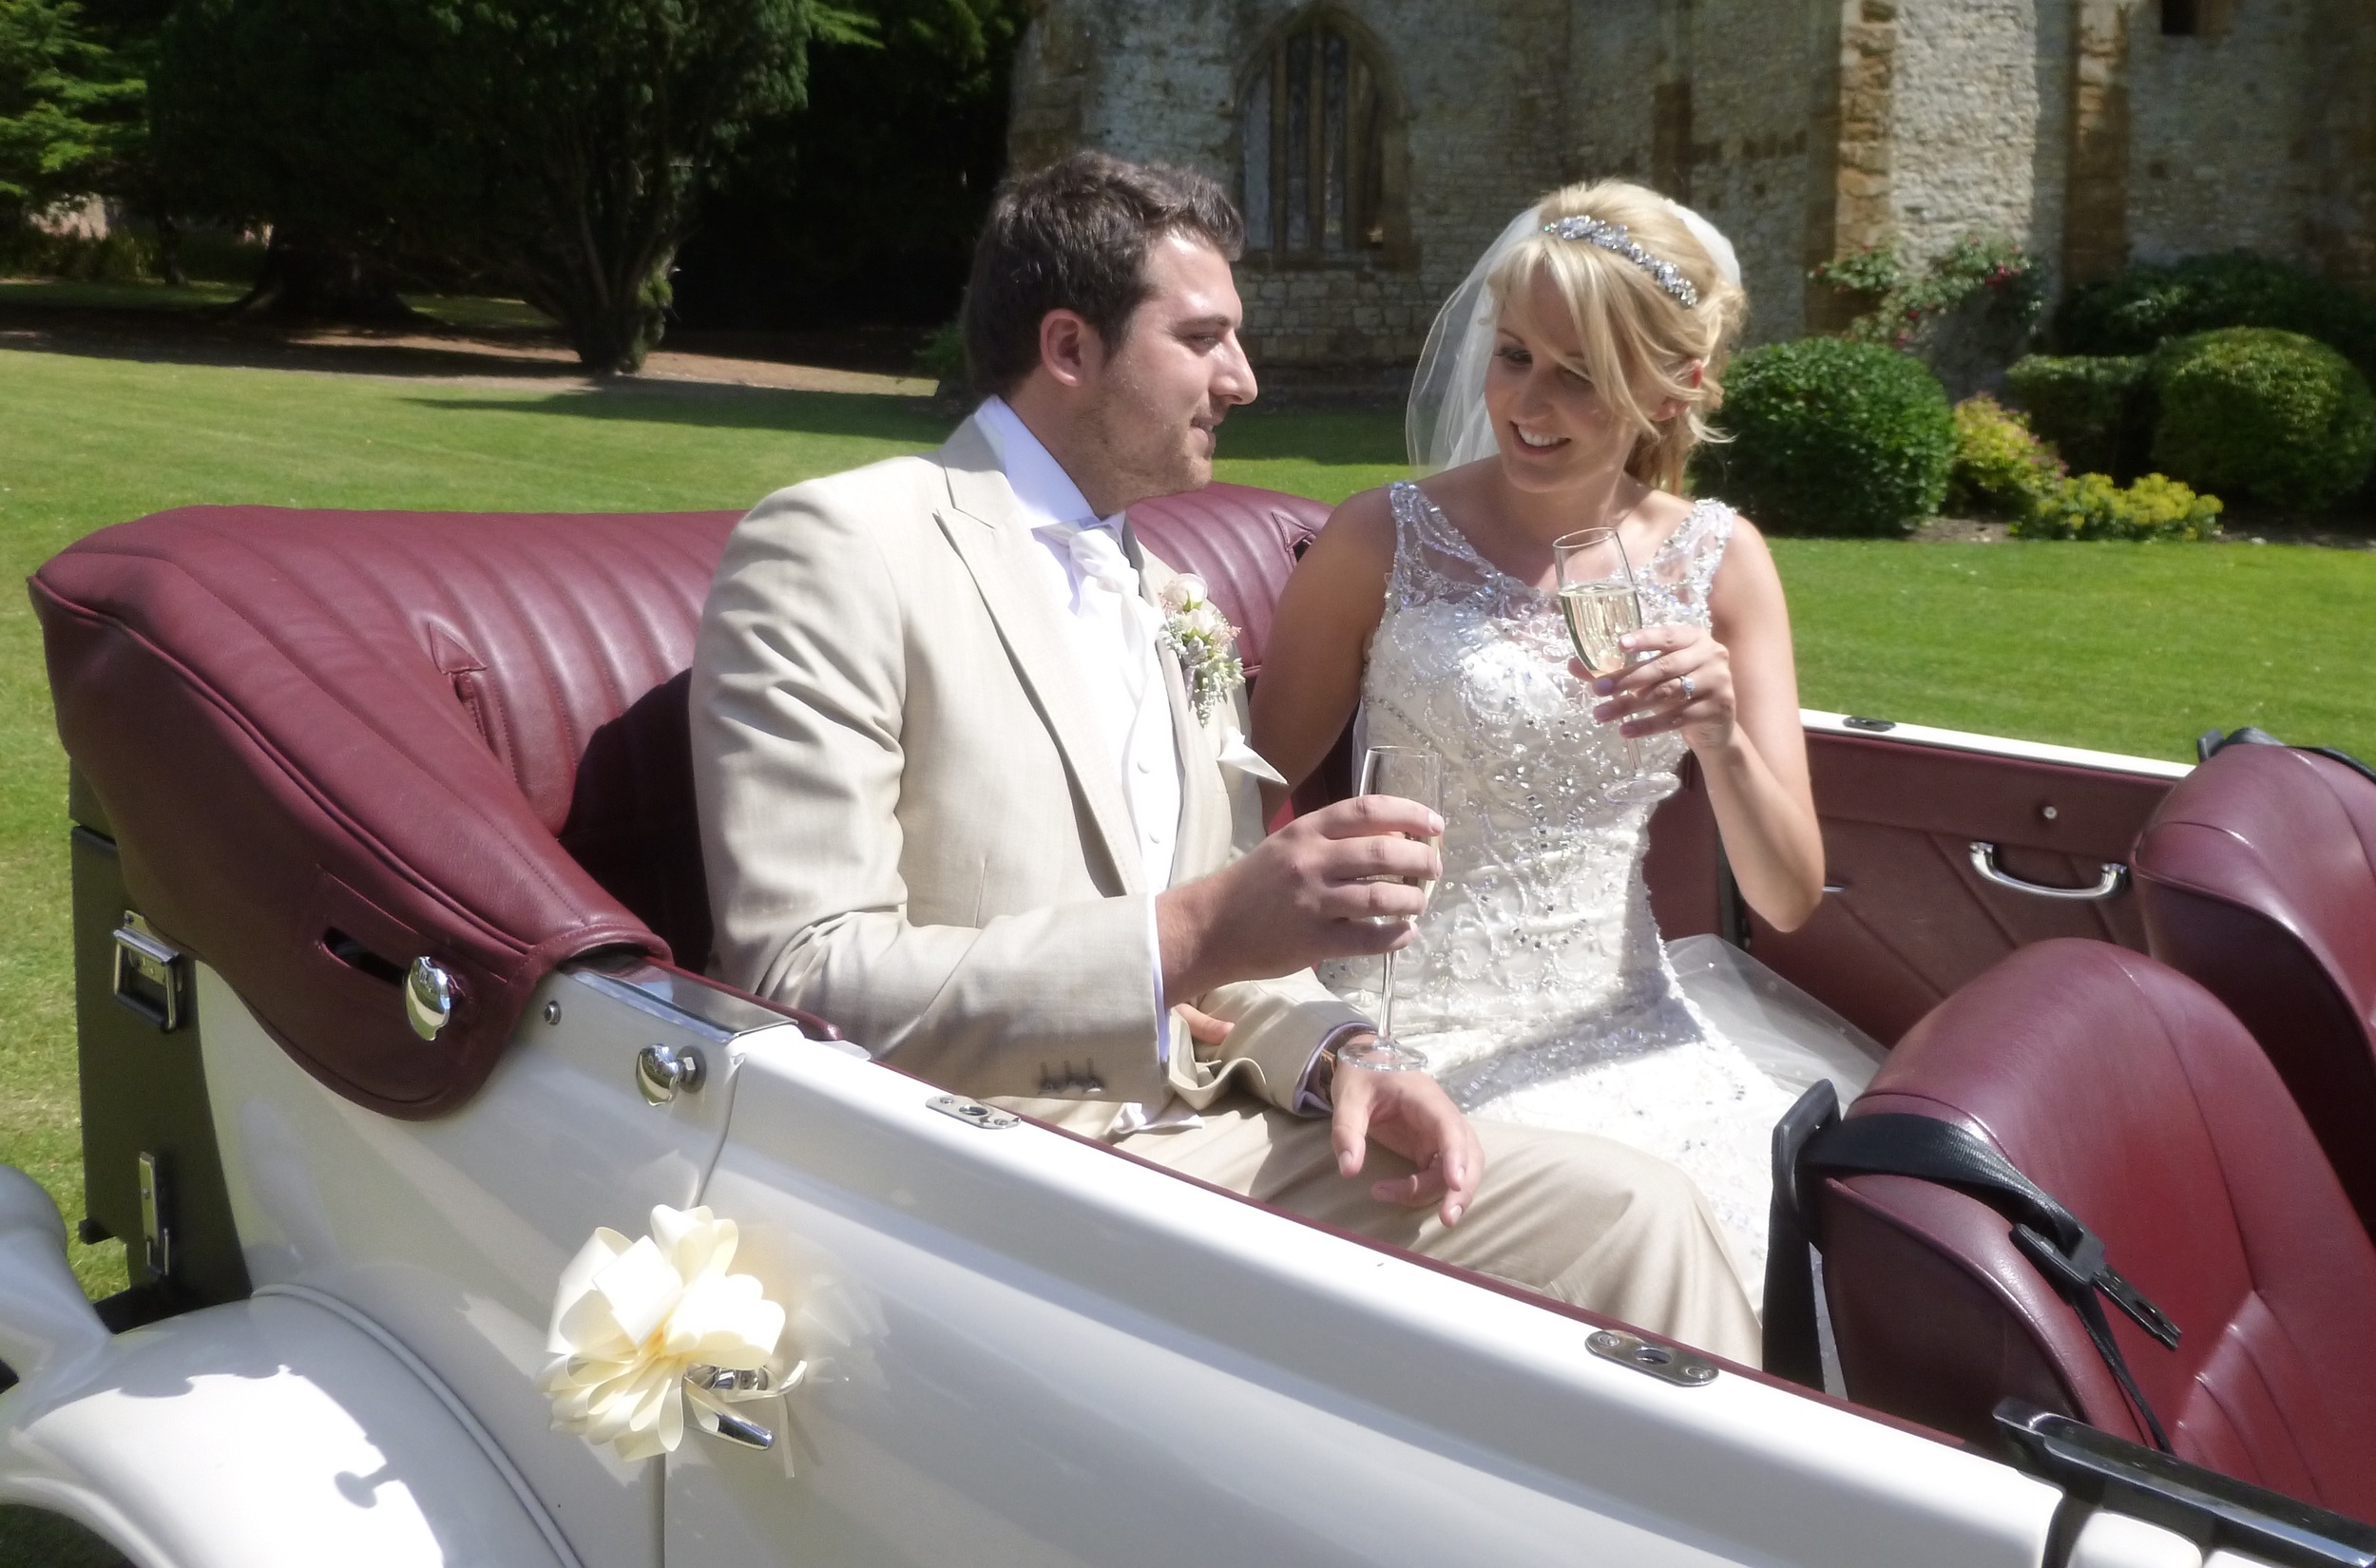 Sam and David enjoying a champagne toast, about to take slow drive in the lovely Warwickshire countryside that surrounds  Ettington Park . A magical way to start married life together.